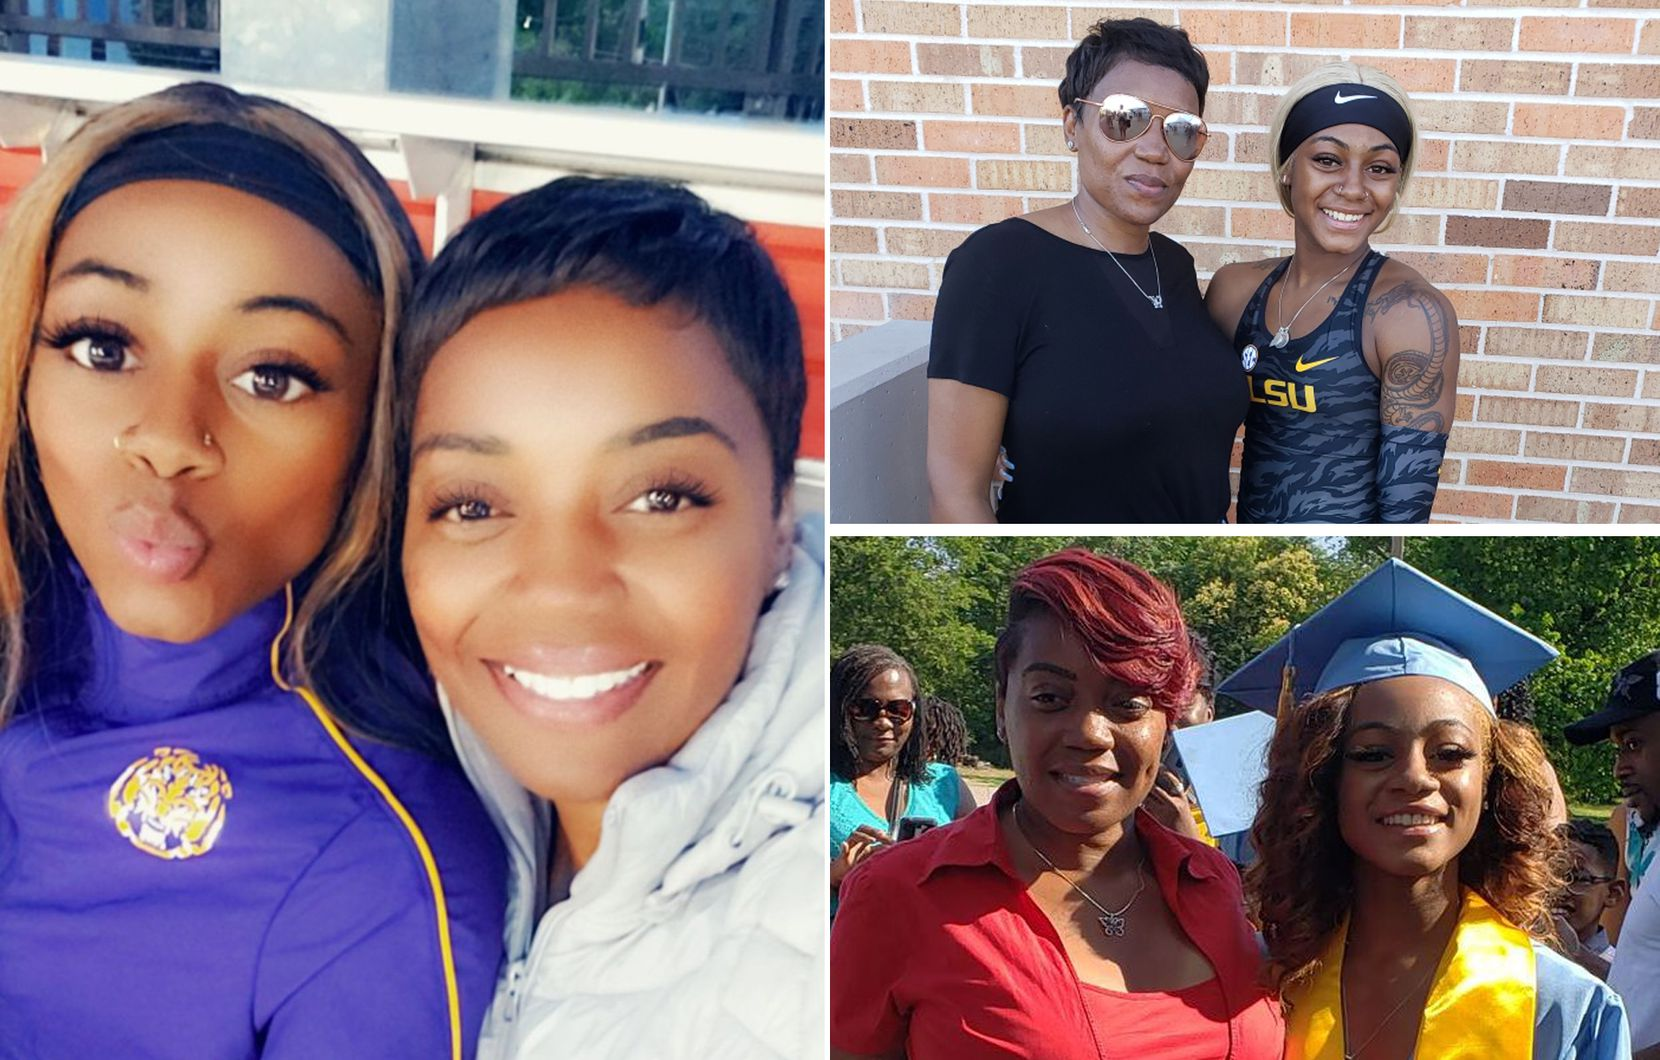 Photos of Sha'Carri and her aunt Shay.